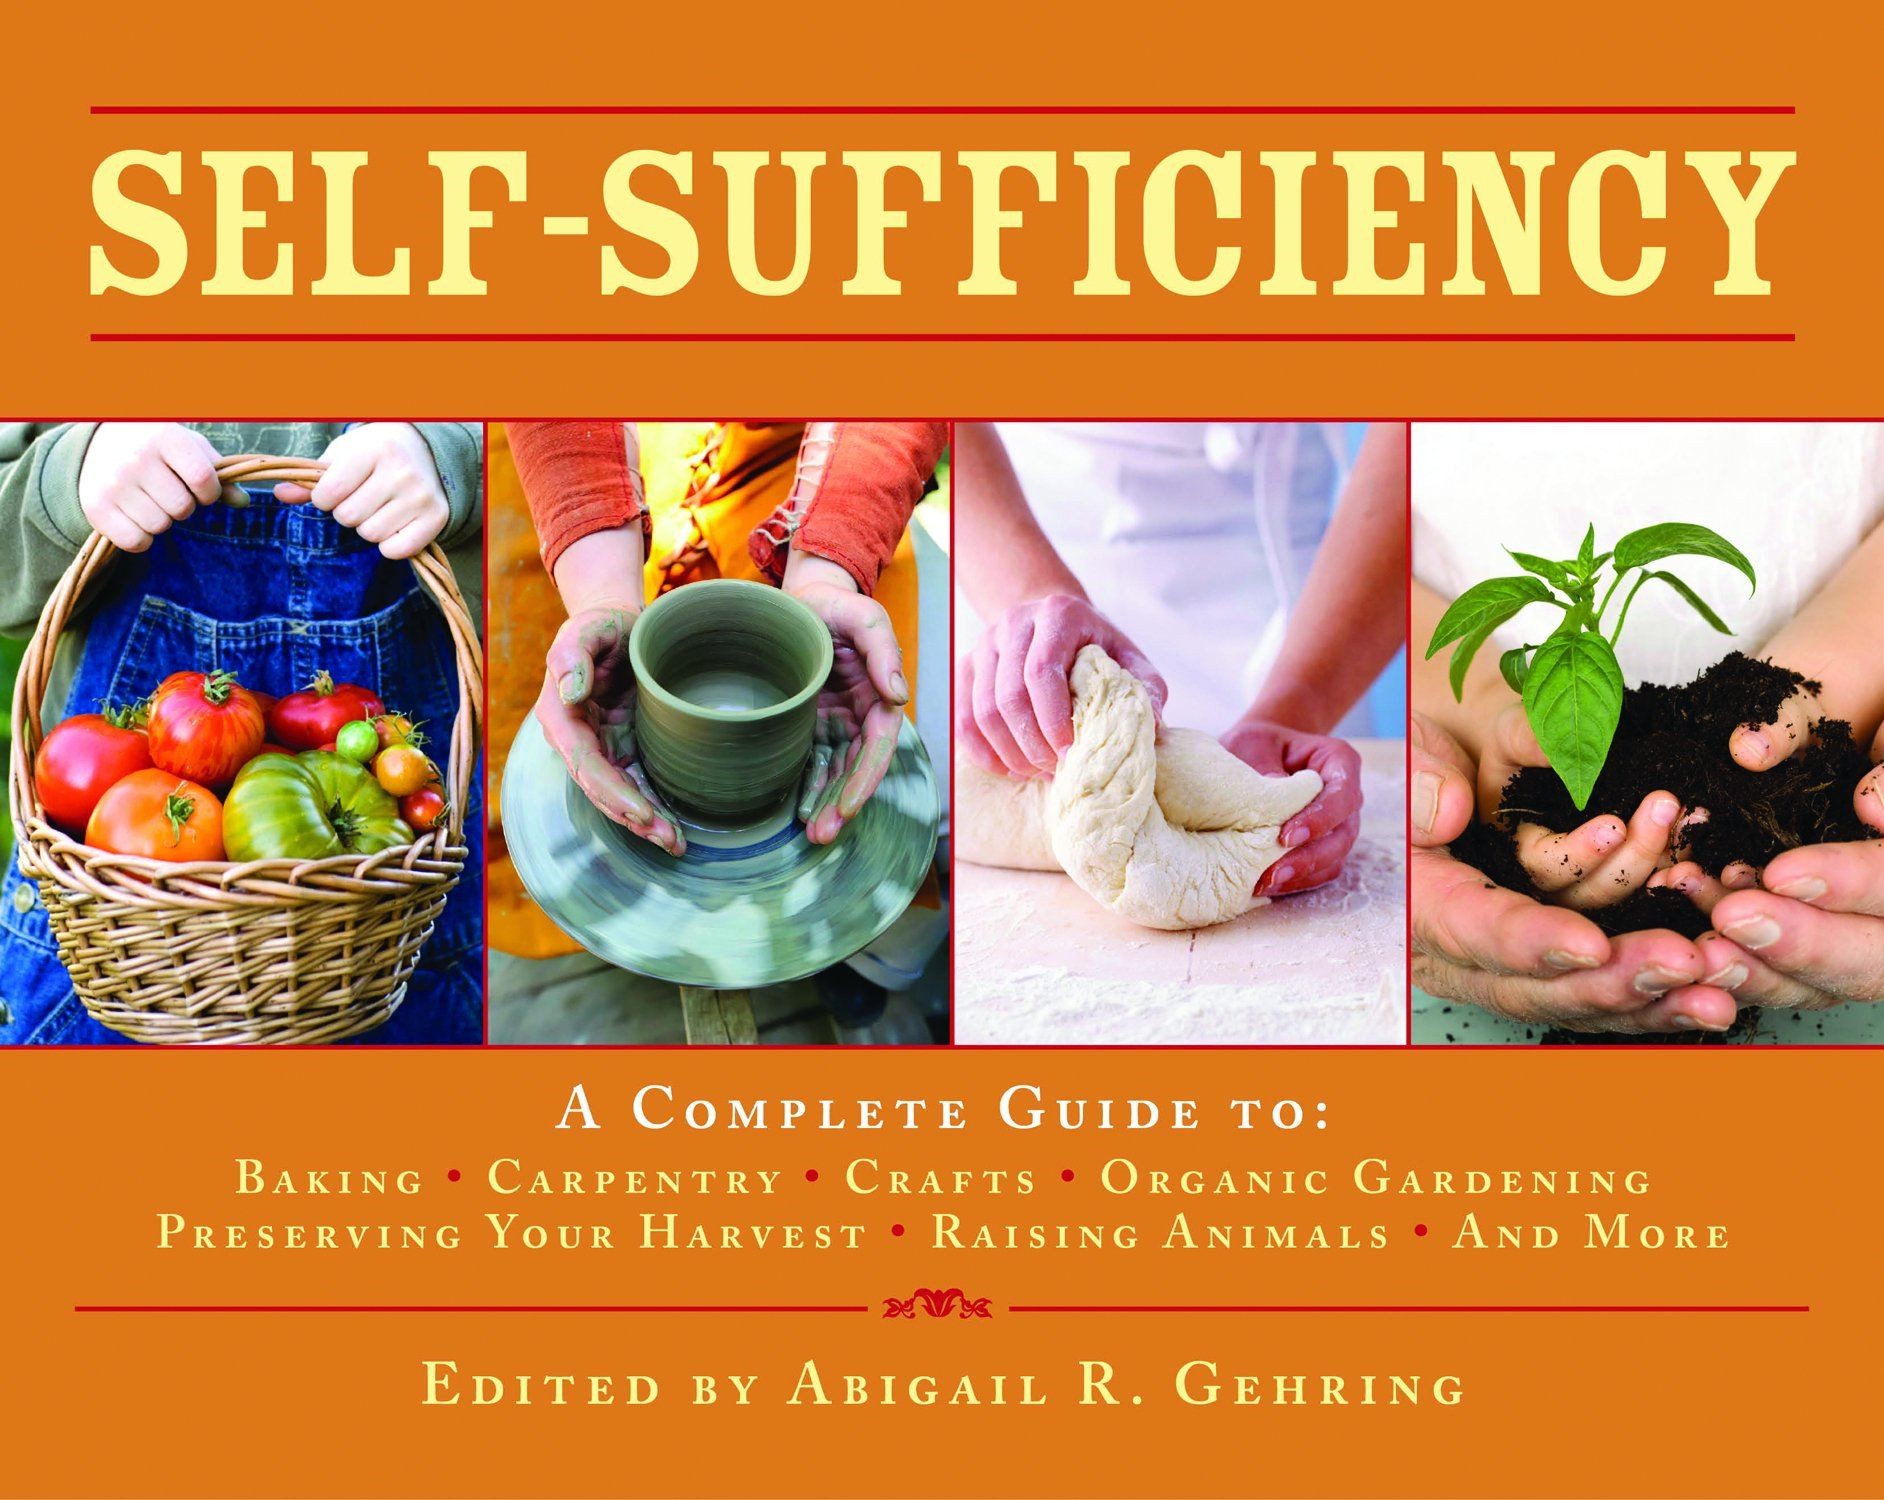 Self-Sufficiency: A Complete Guide to Baking, Carpentry, Crafts,  Organic Gardening, Preserving Your Harvest, Raising Animals, and More By: Abigail R. Gehring